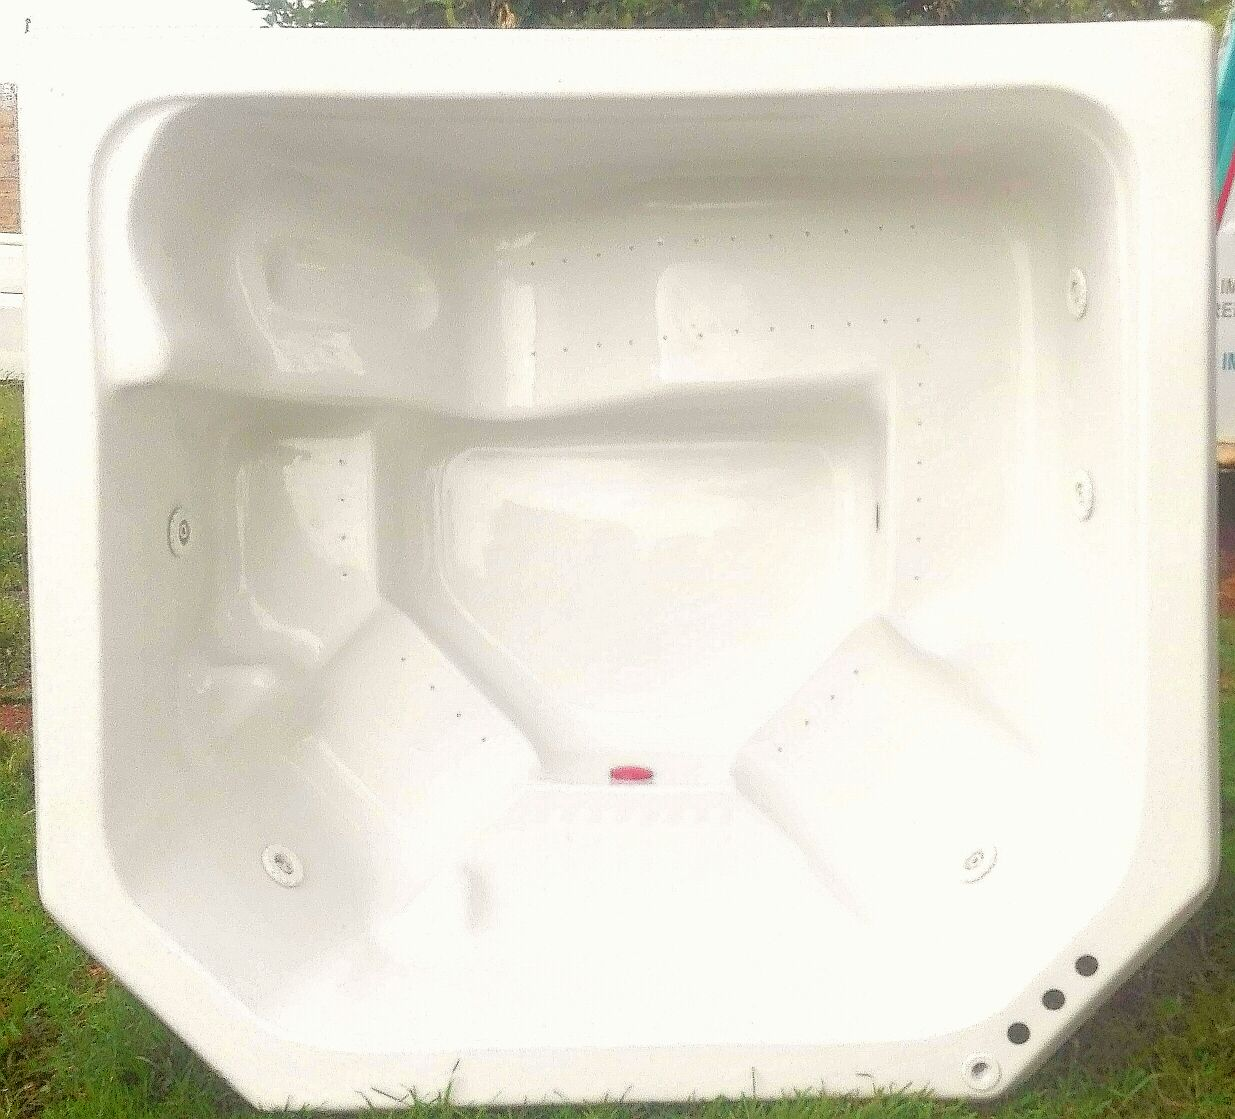 7 SEATER JACUZZI